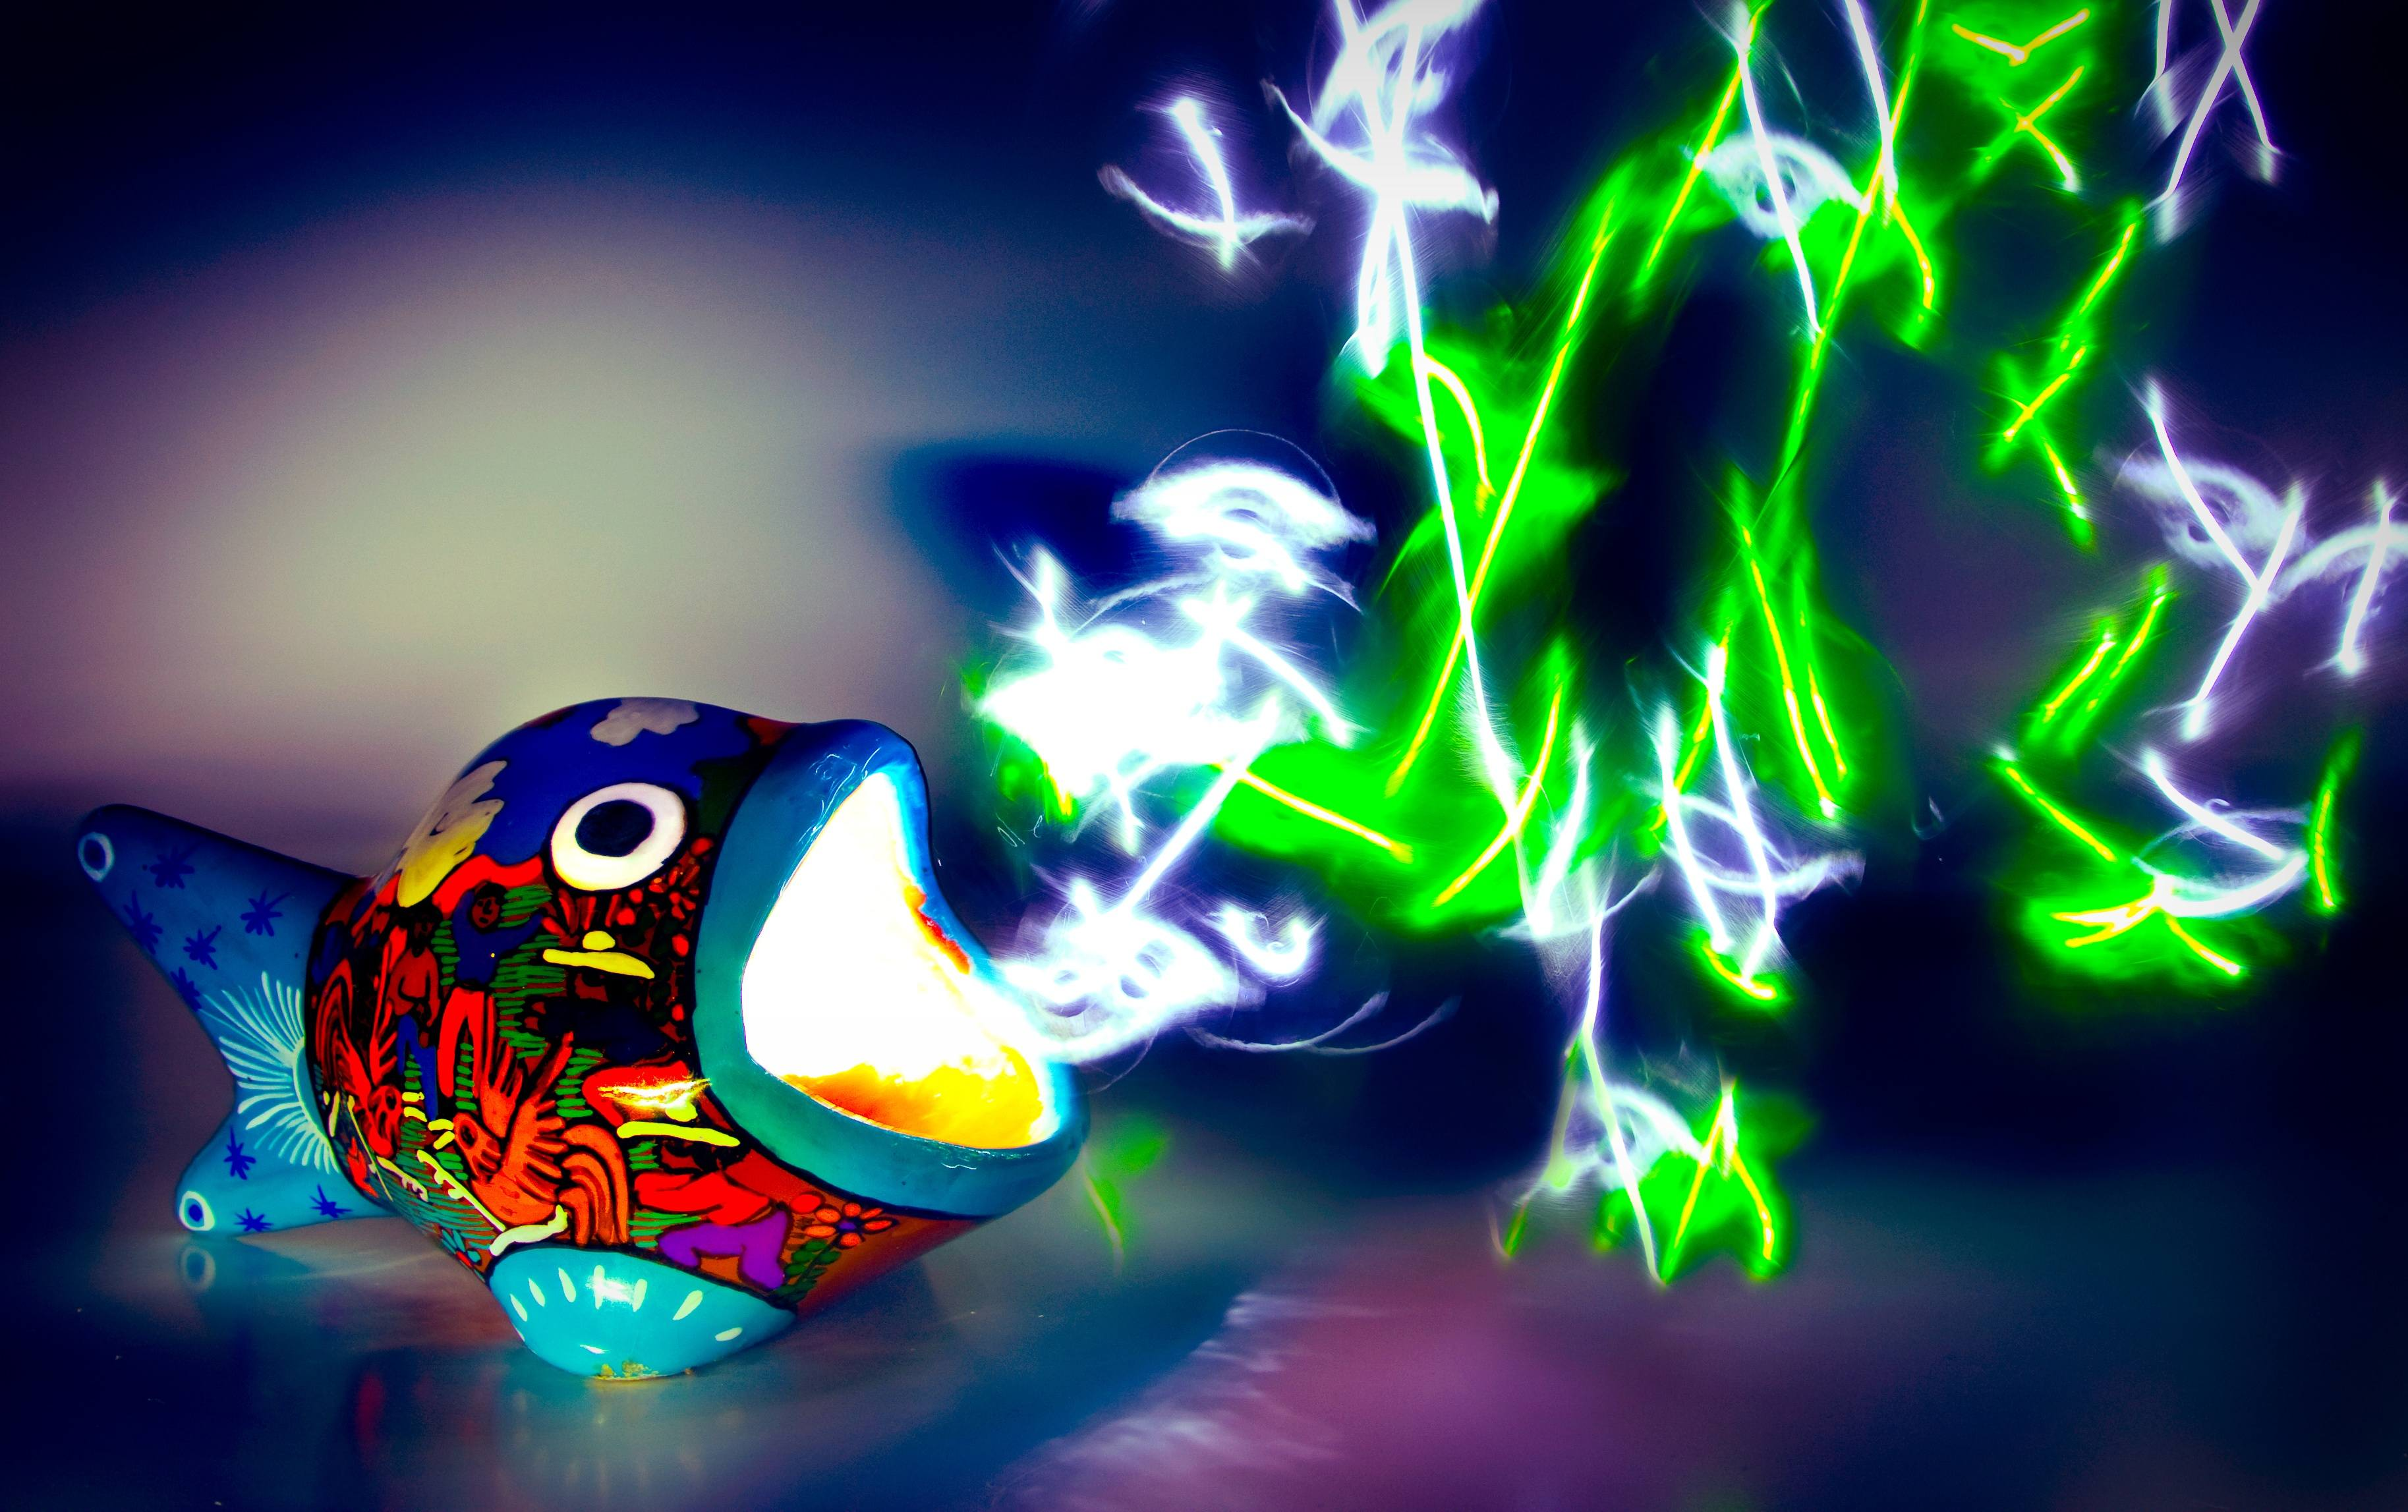 A light painted image of a hand-painted ceramic fish with light emitting from its mouth<div class='credit'><strong>Credit:</strong> A light painted image of a hand-painted ceramic fish with light emitting from its mouth</div>